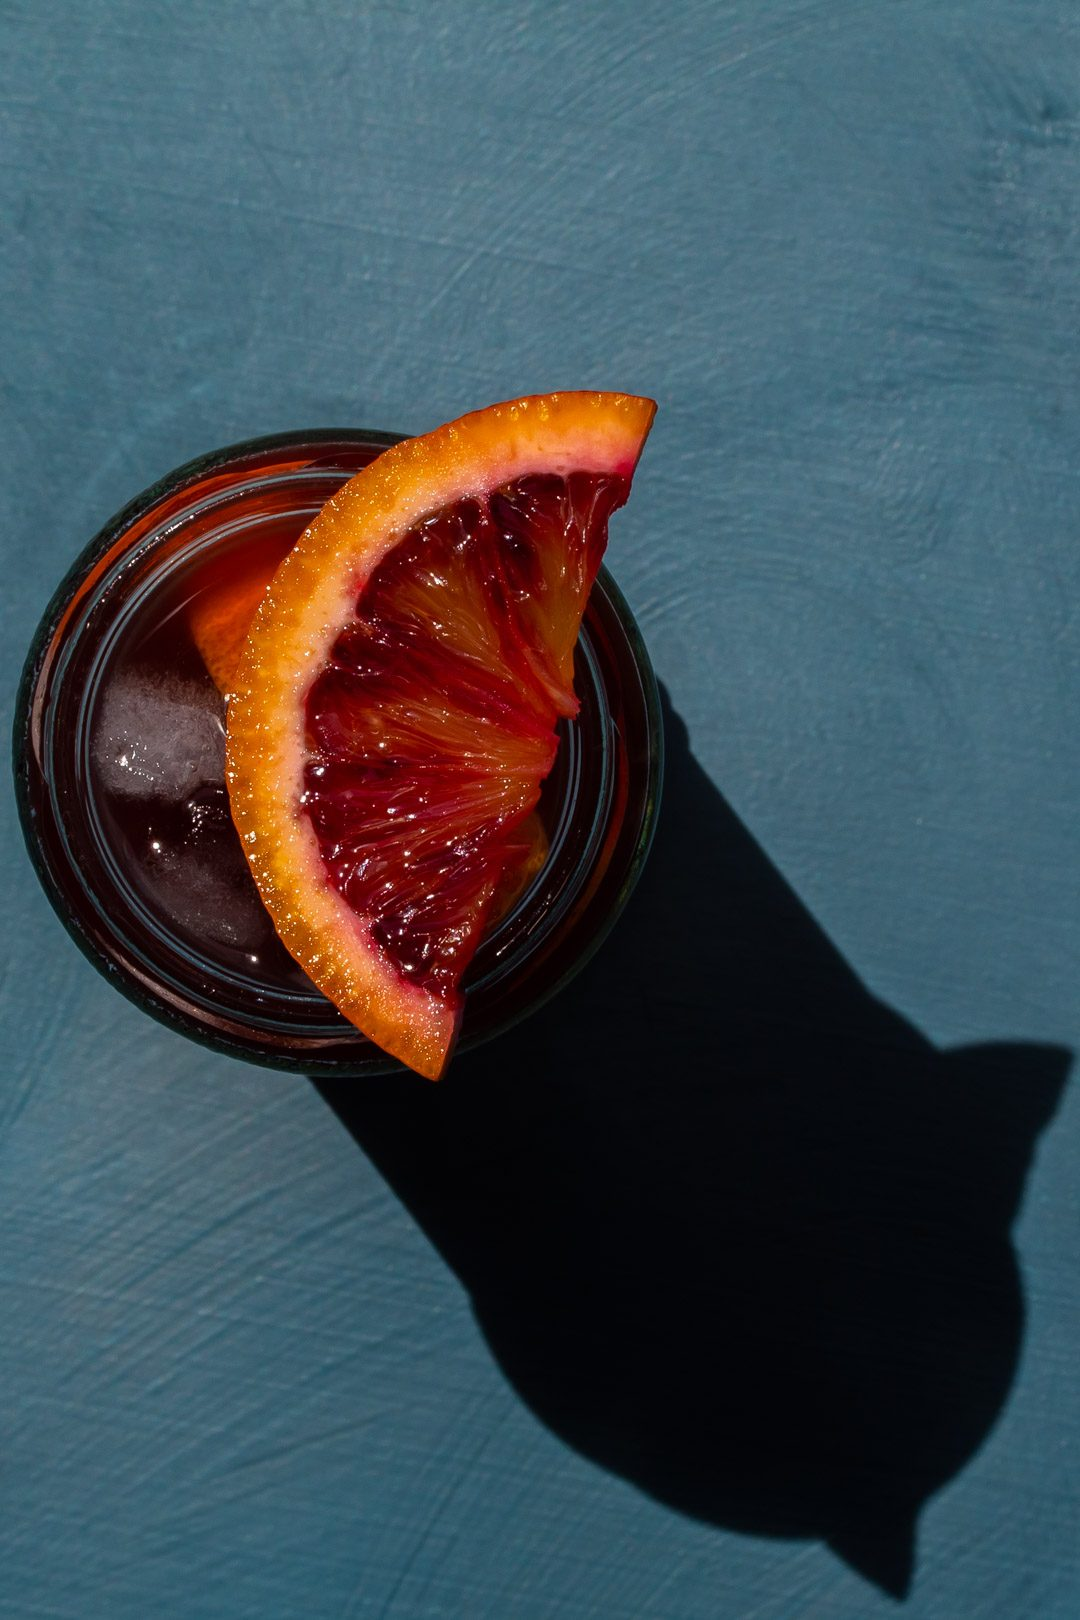 Pickle blood orange Americano cocktail from above on blue background with shadow